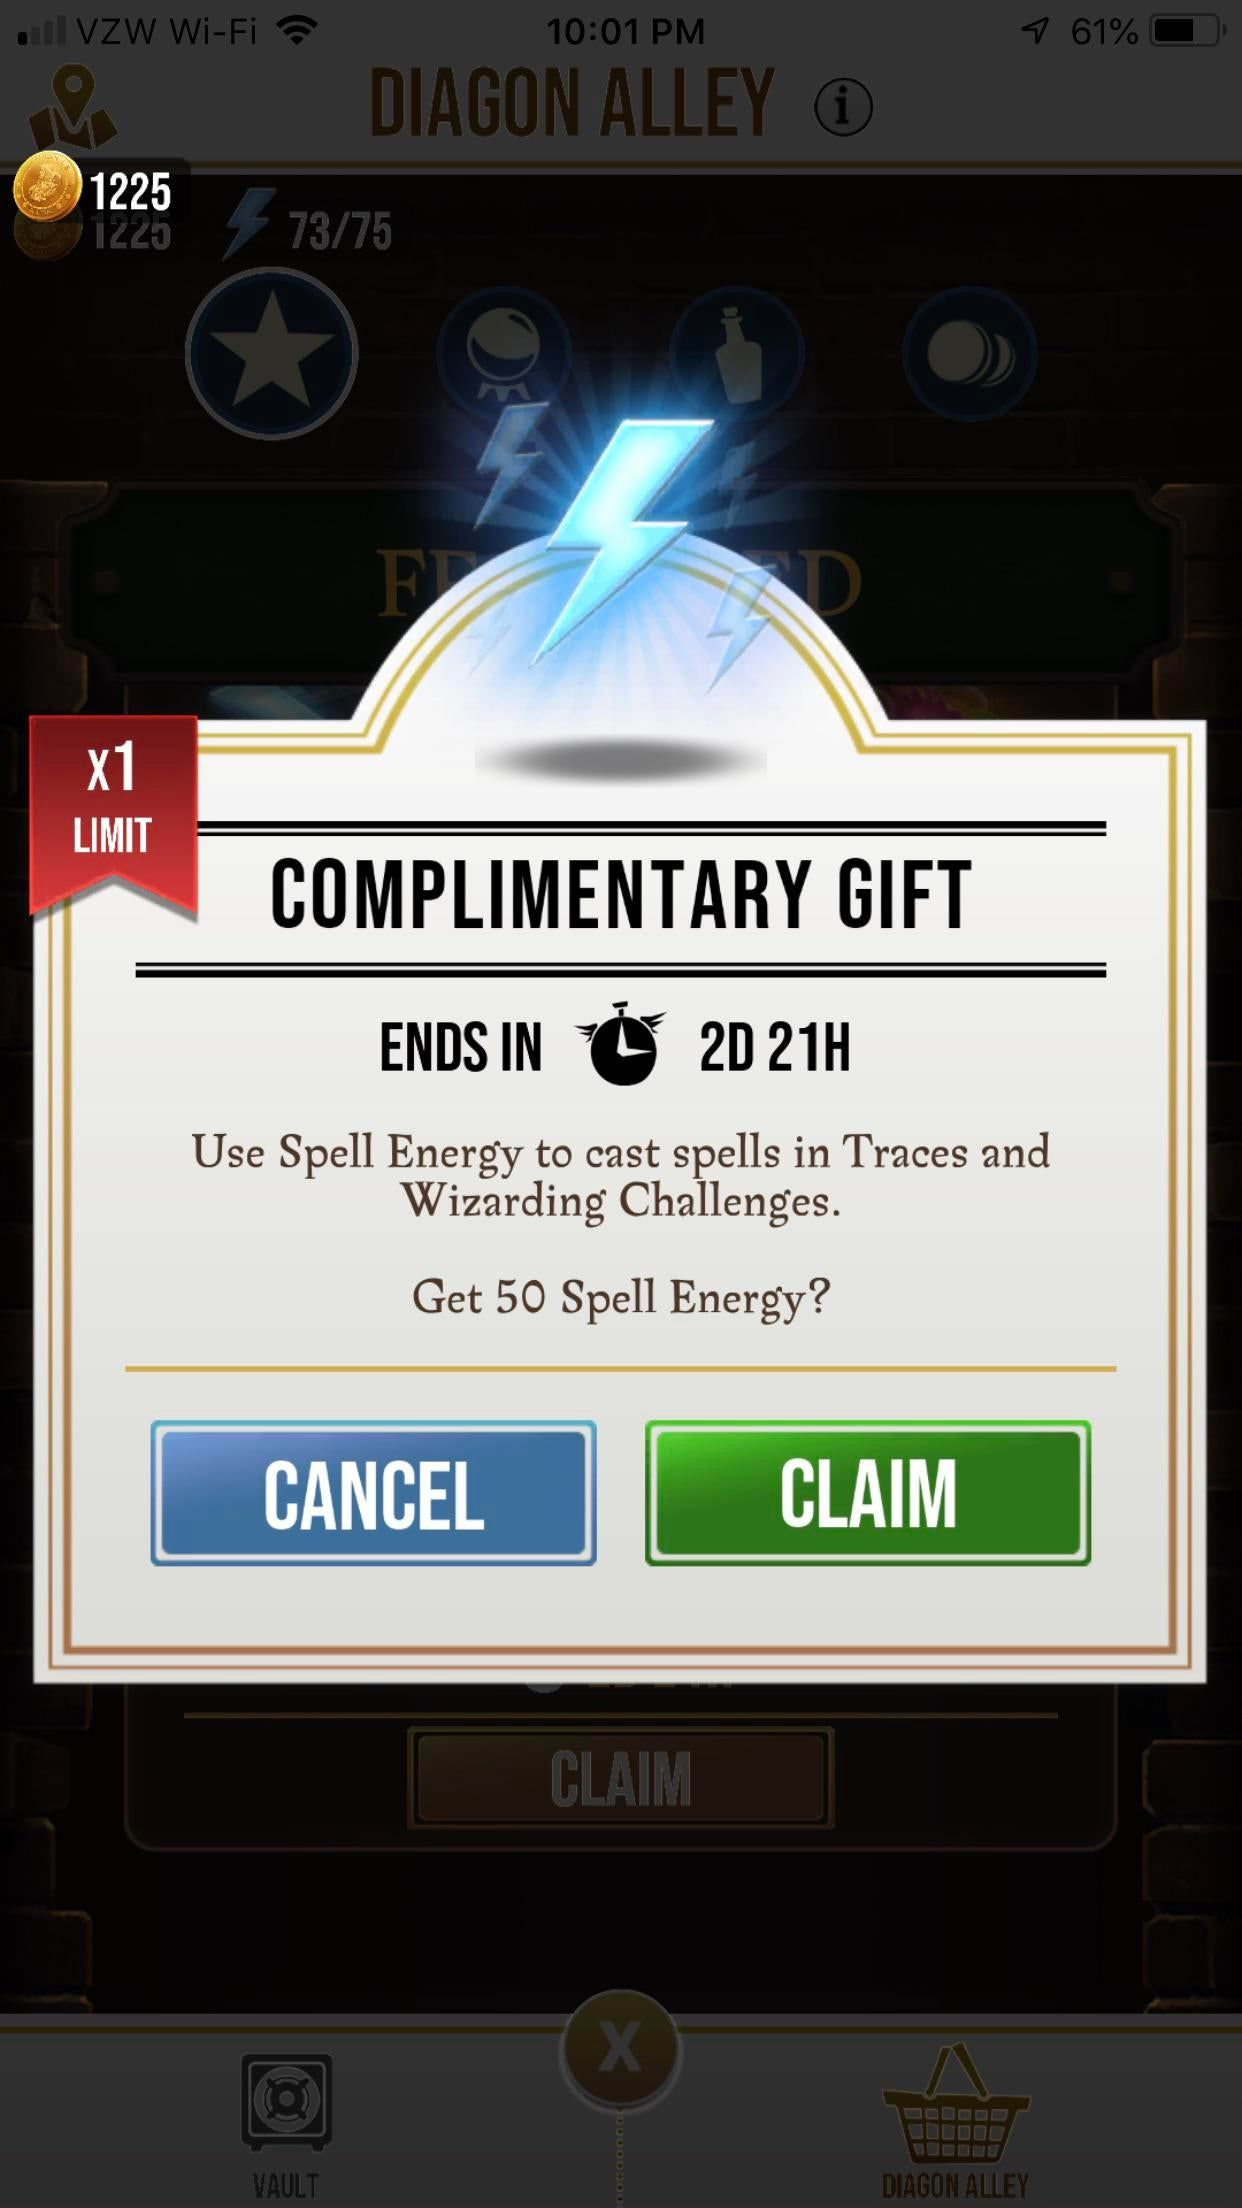 Complimentary Gift Of Spell Energy In Diagon Alley Alley Complimentary Diagon Energy Gift Spell Diagon Alley Spelling Complimentary